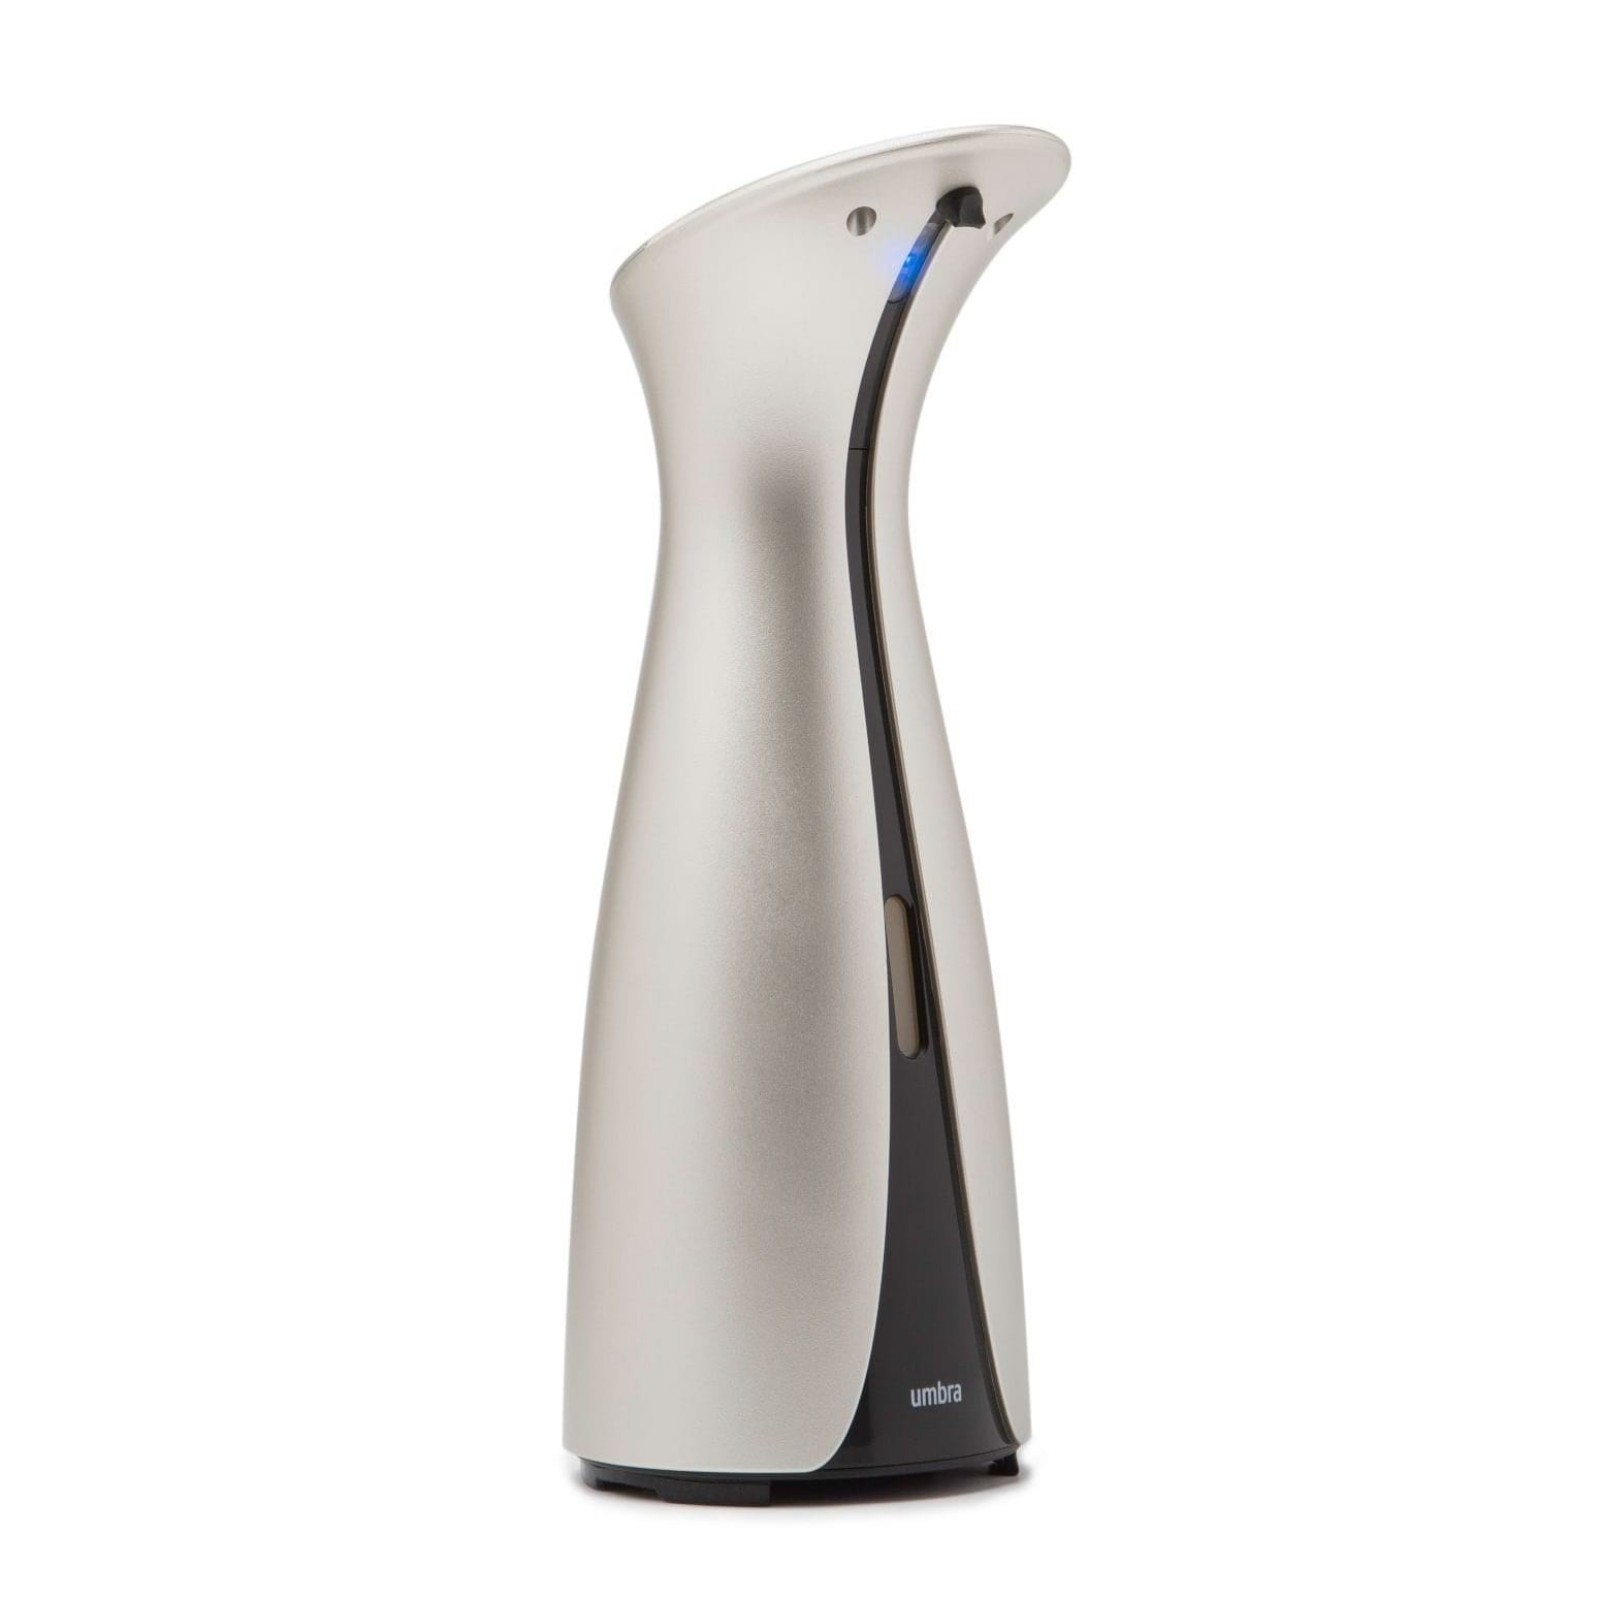 OTTO Automatic Soap & Sanitizer Dispenser 250 ml (Nickel) - Umbra